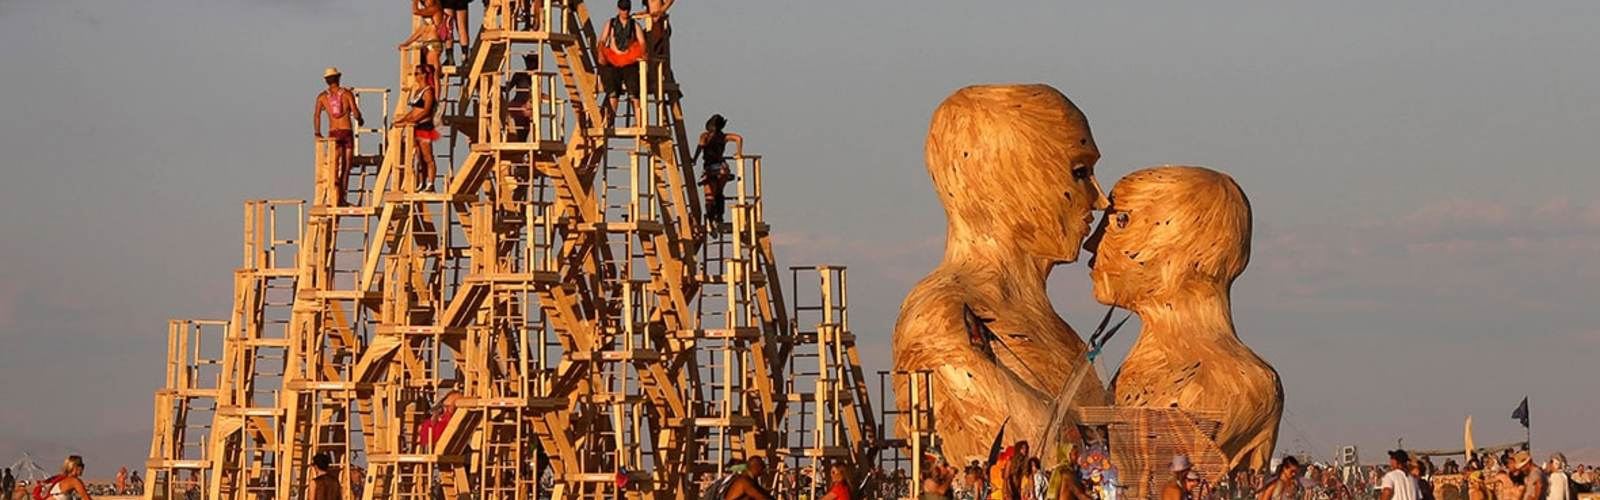 All you need to know about Burning Man Festival events in Europe